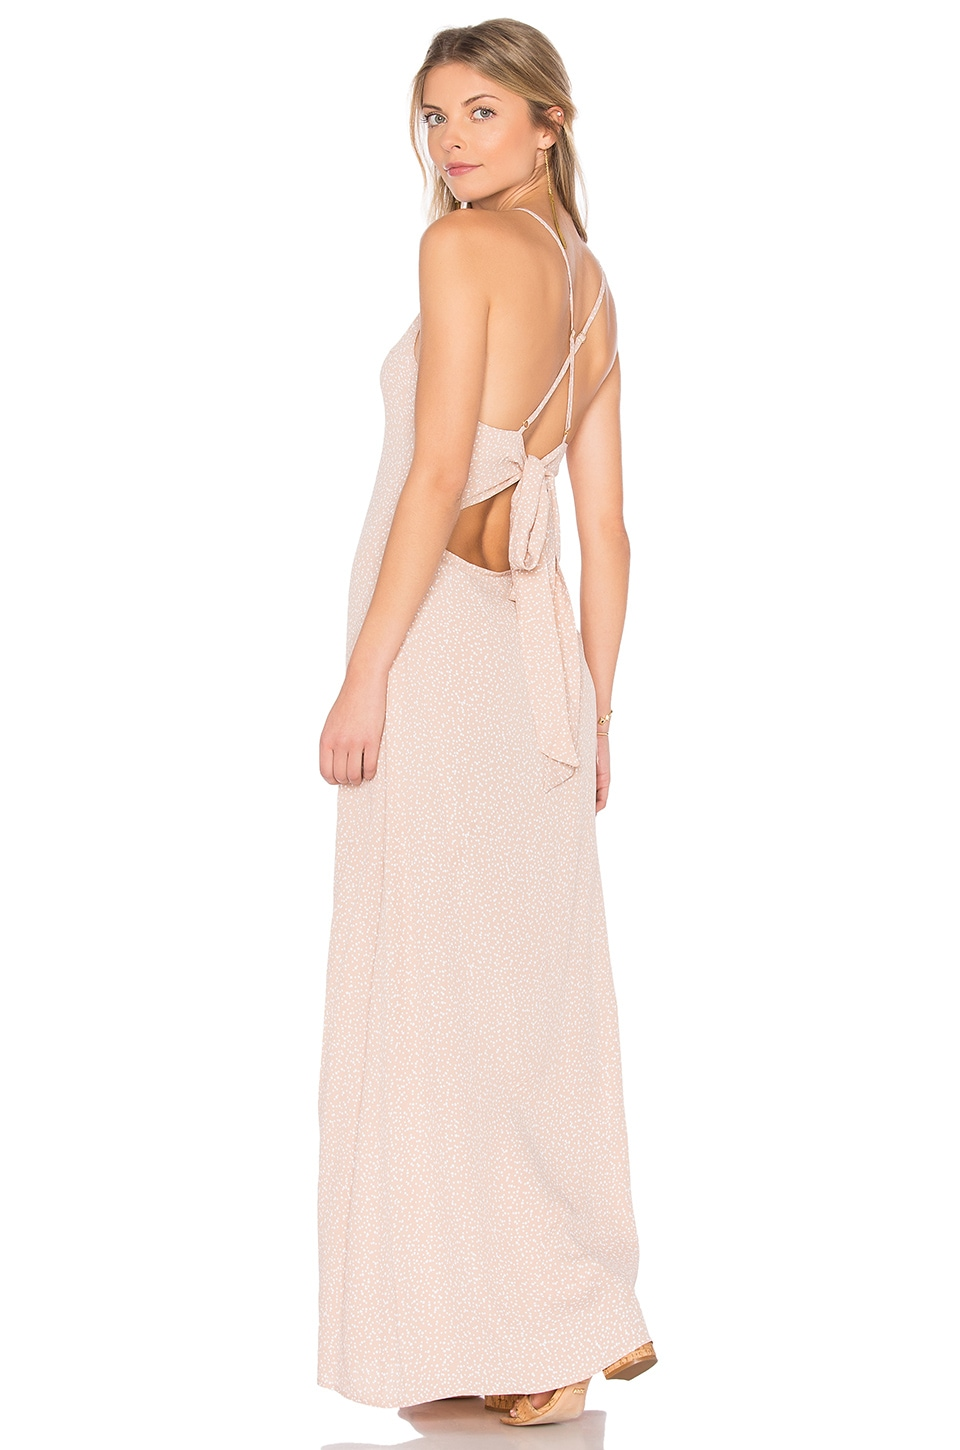 Adaline Maxi Dress by FLYNN SKYE